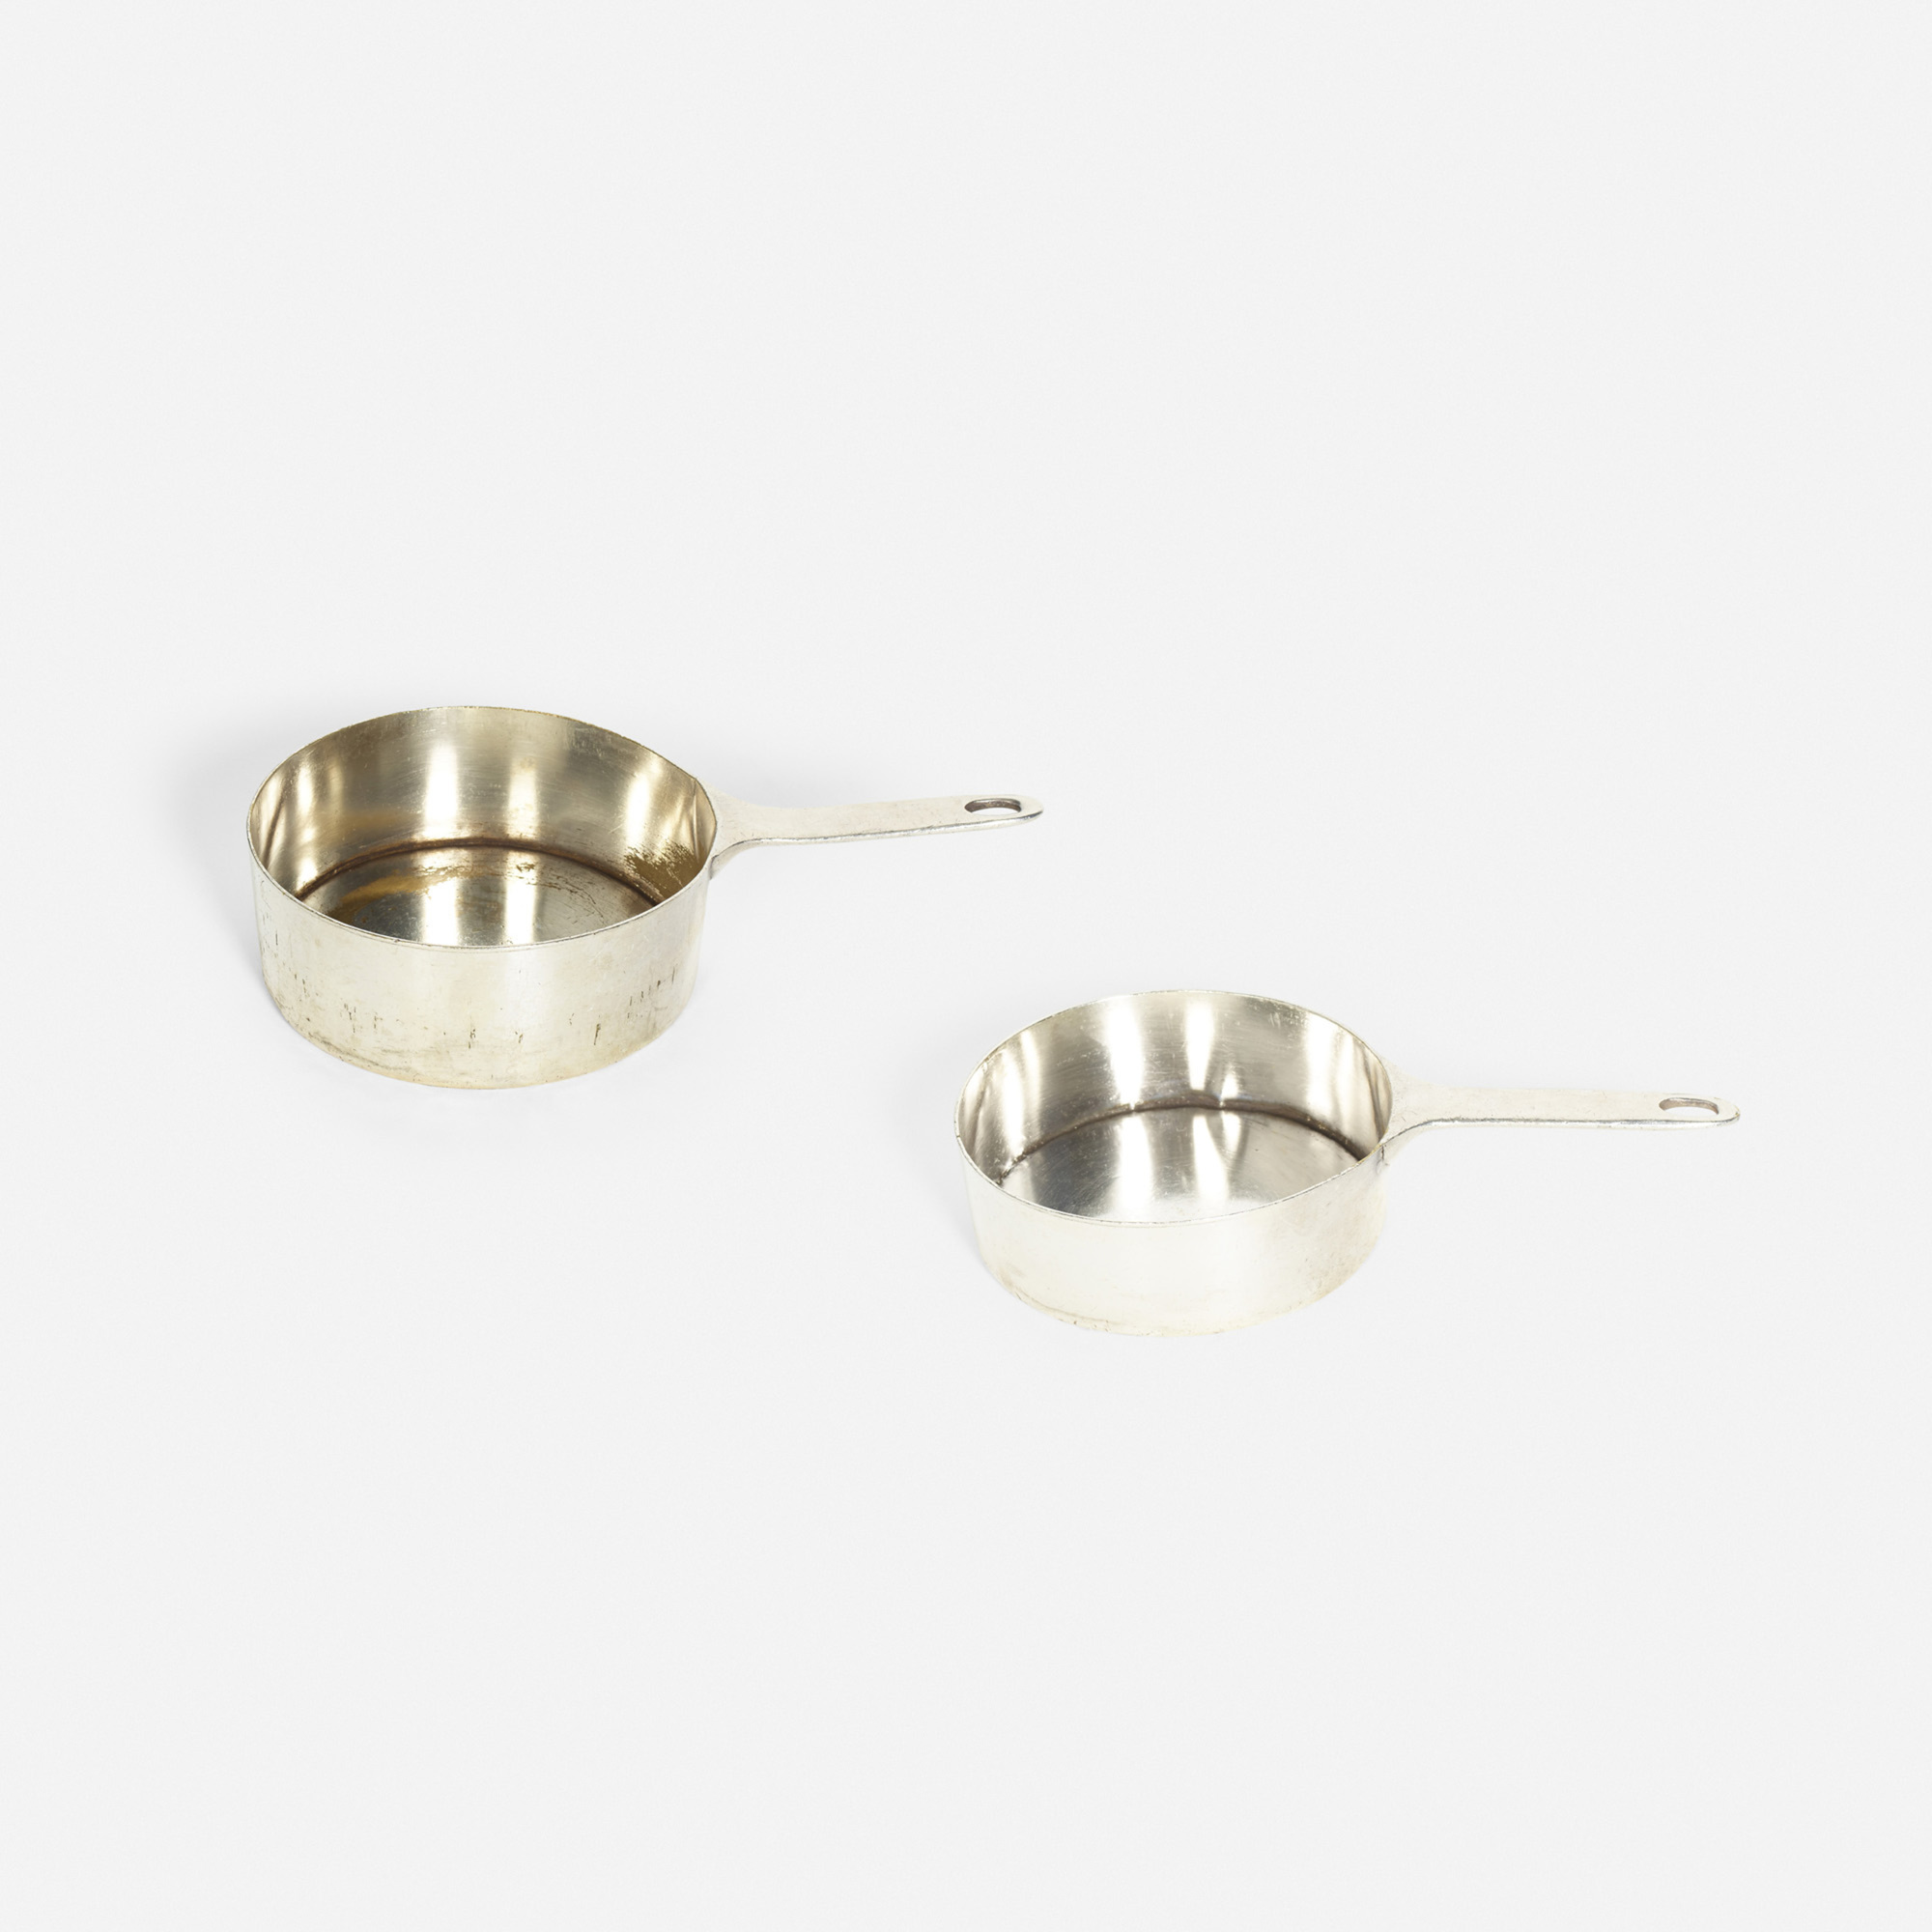 874: Garth and Ada Louise Huxtable / sauce pots from the kitchen of The Four Seasons, set of two (1 of 1)